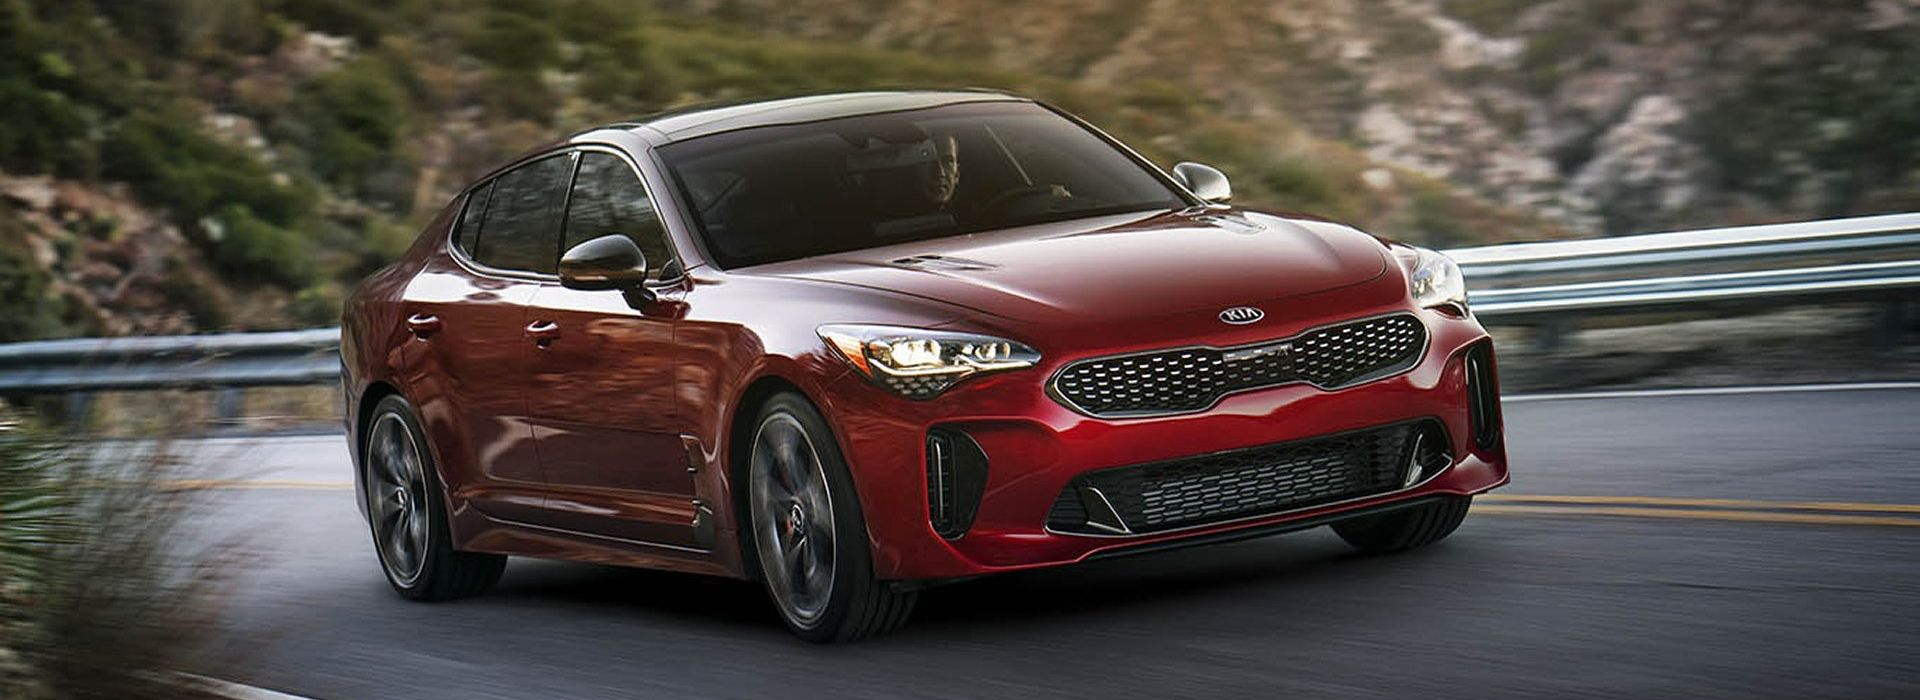 2018 Kia Stinger Preview in Oklahoma City, OK